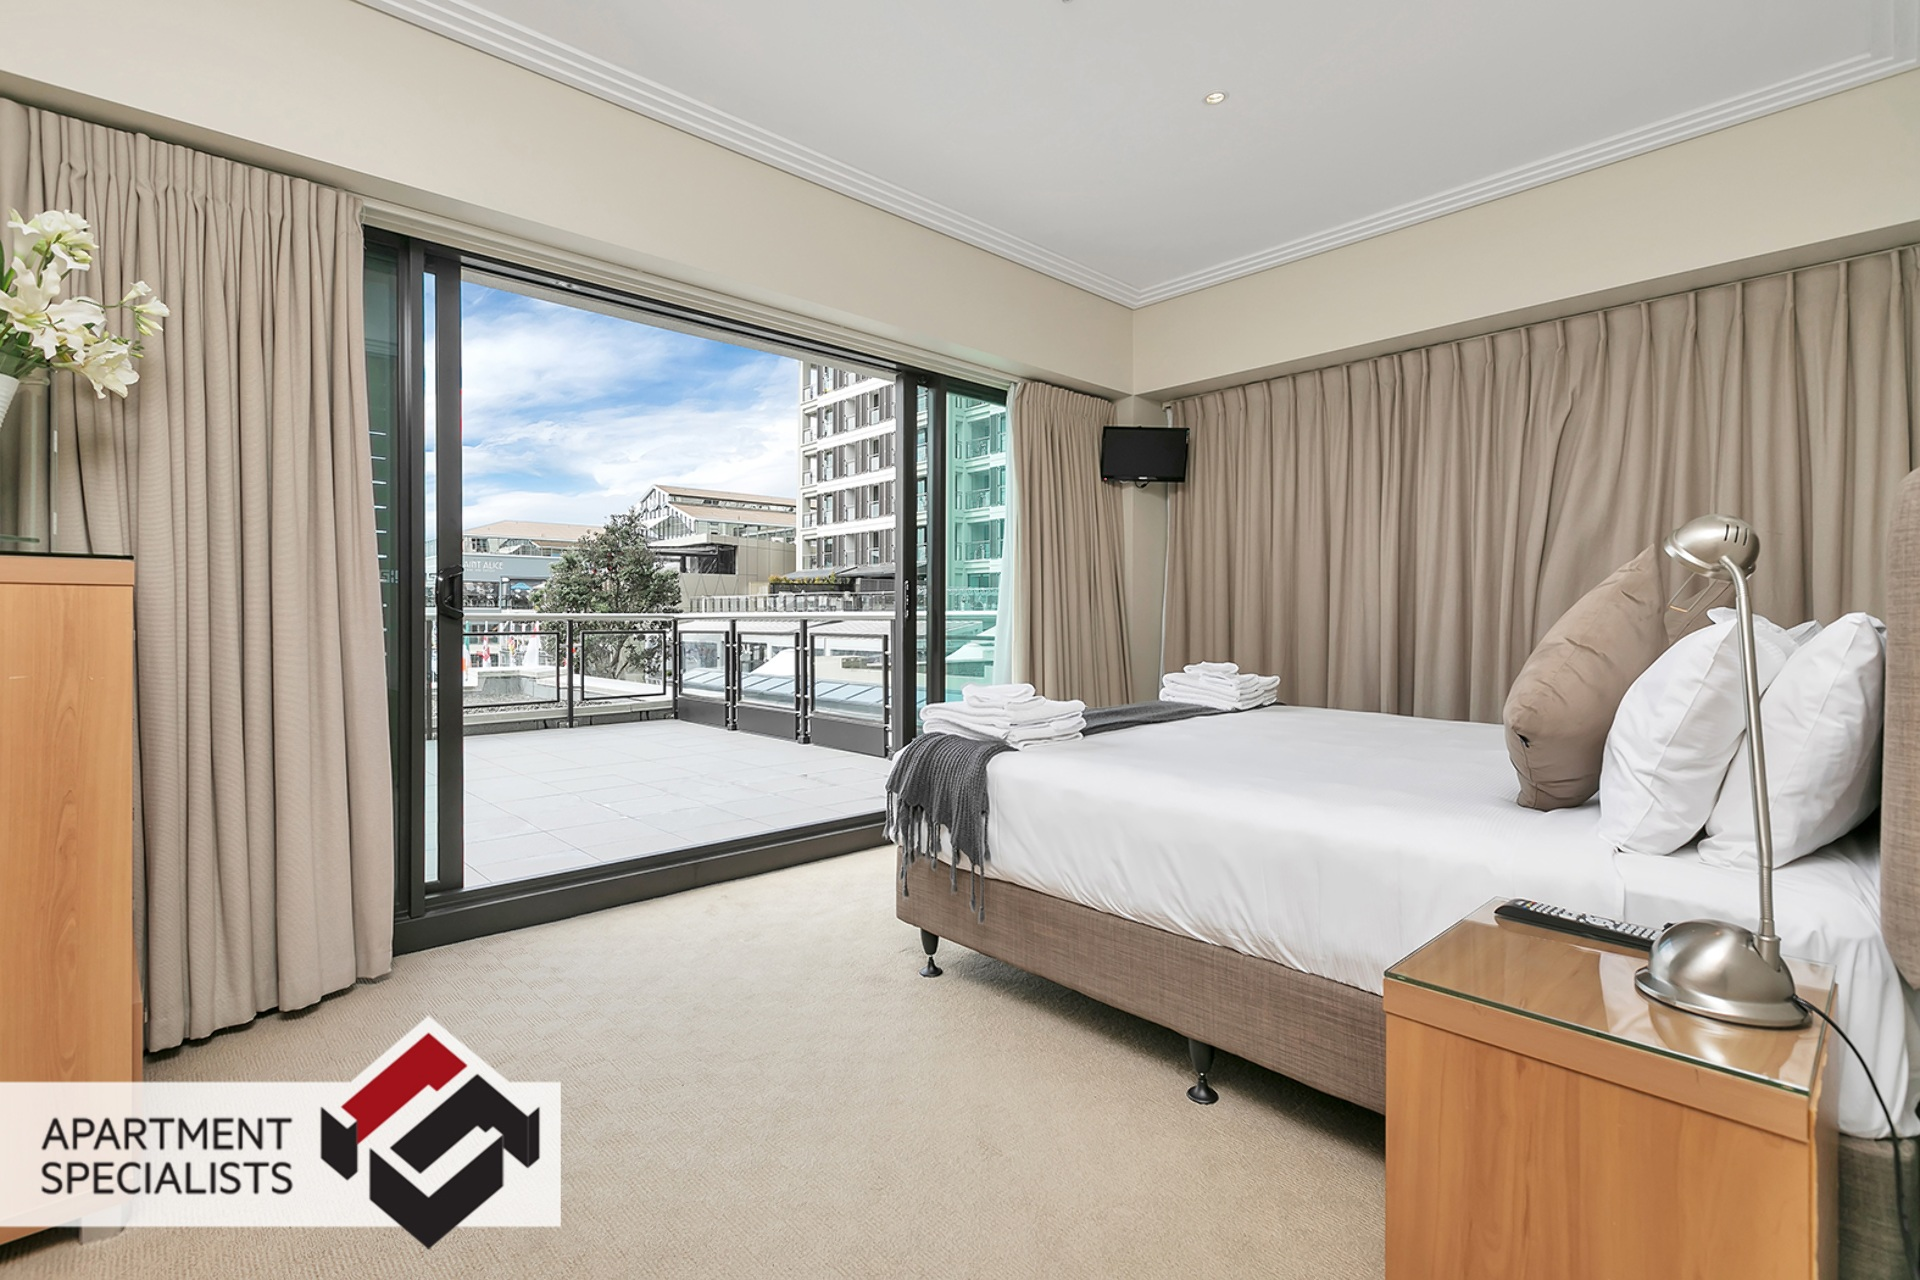 6 | 99 Customs Street West, City Centre | Apartment Specialists